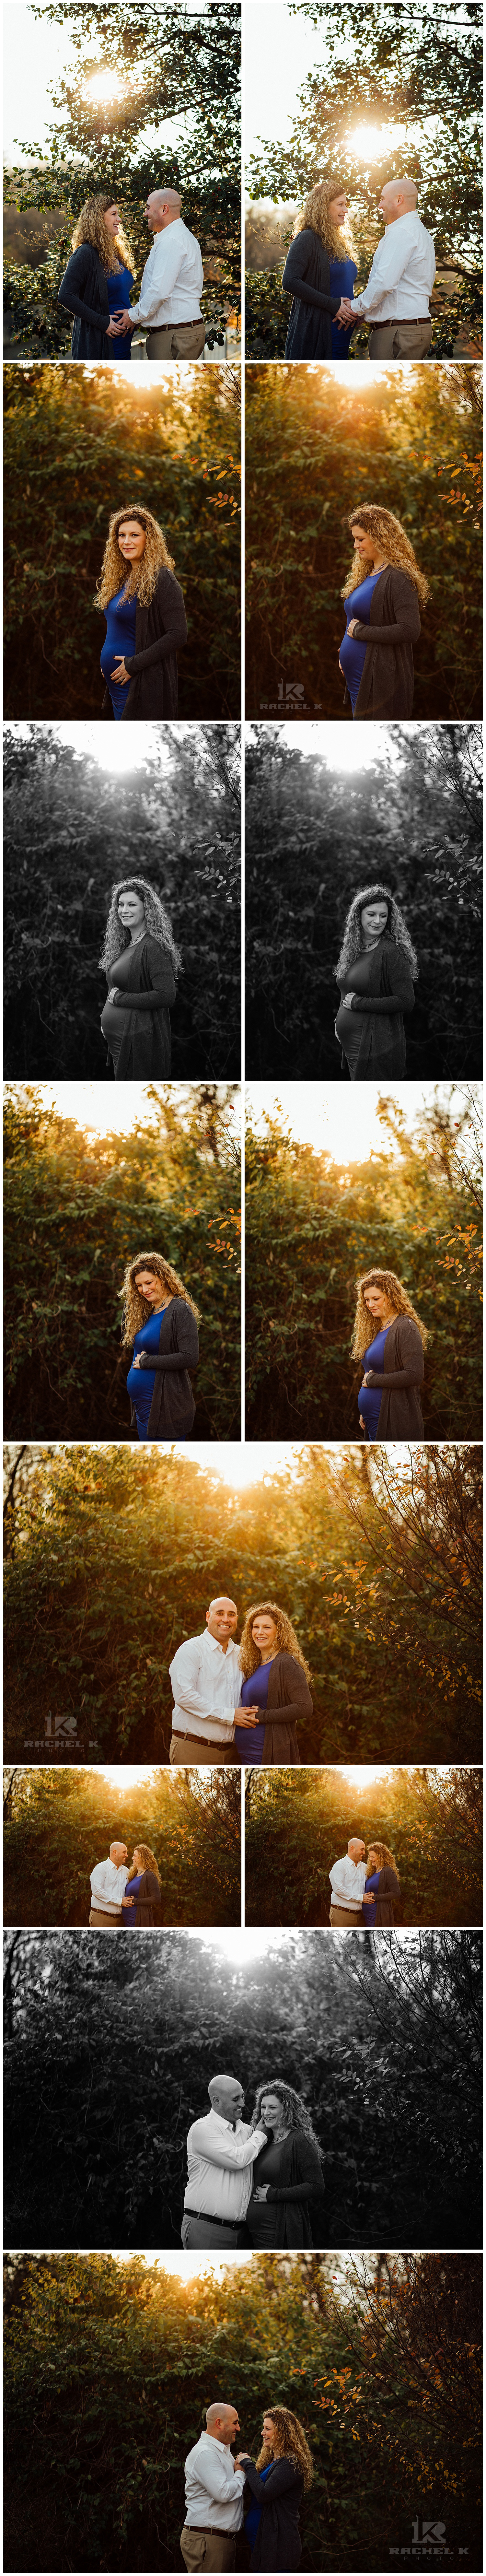 Fairfax county winter maternity session with dog by Rachel K Photo